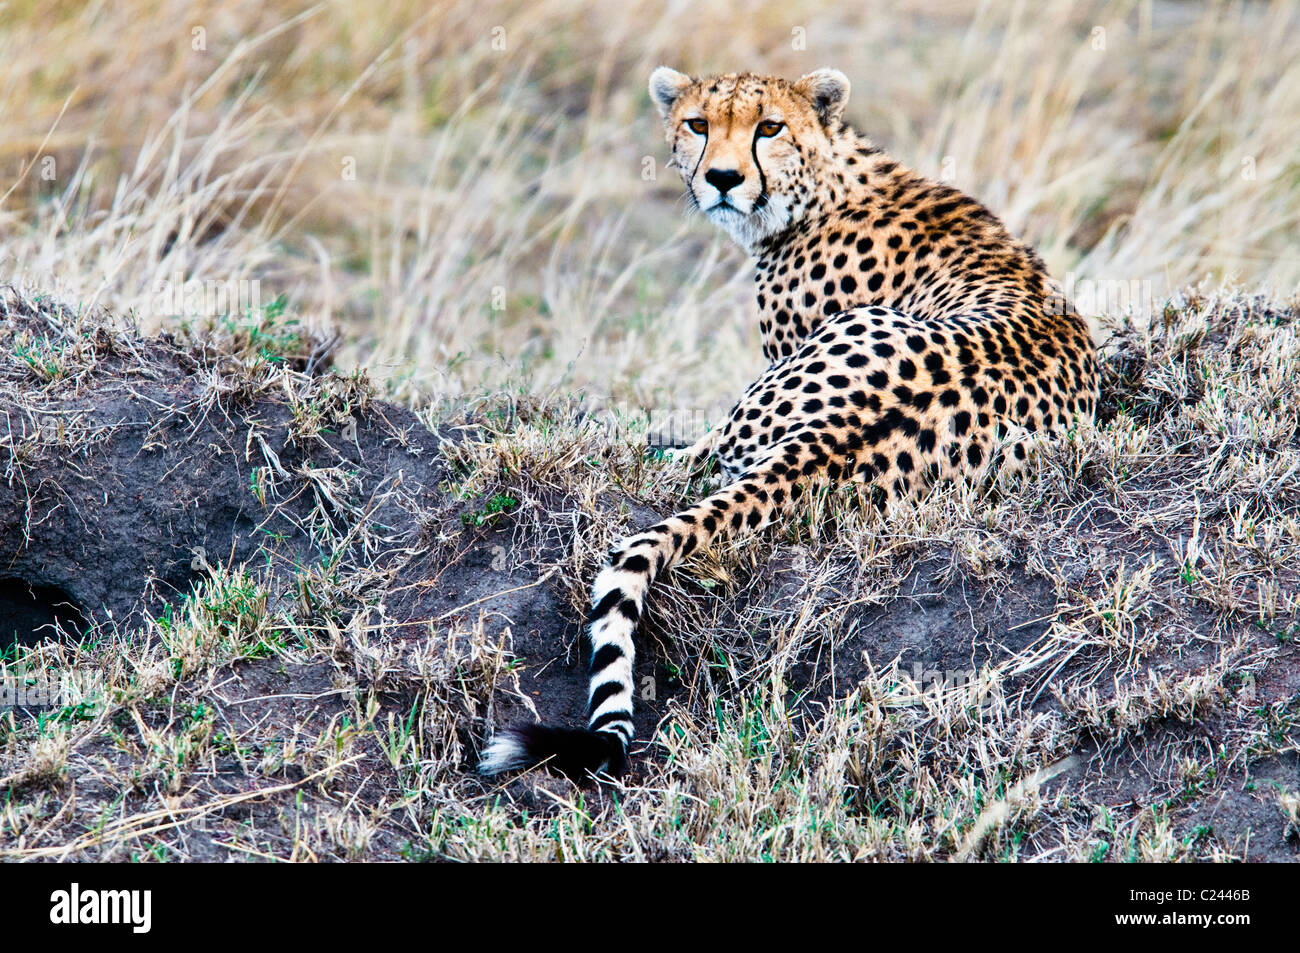 Cheetah, Acinonyx  jubatus, searching for prey, Masai Mara National Reserve, Kenya, Africa - Stock Image